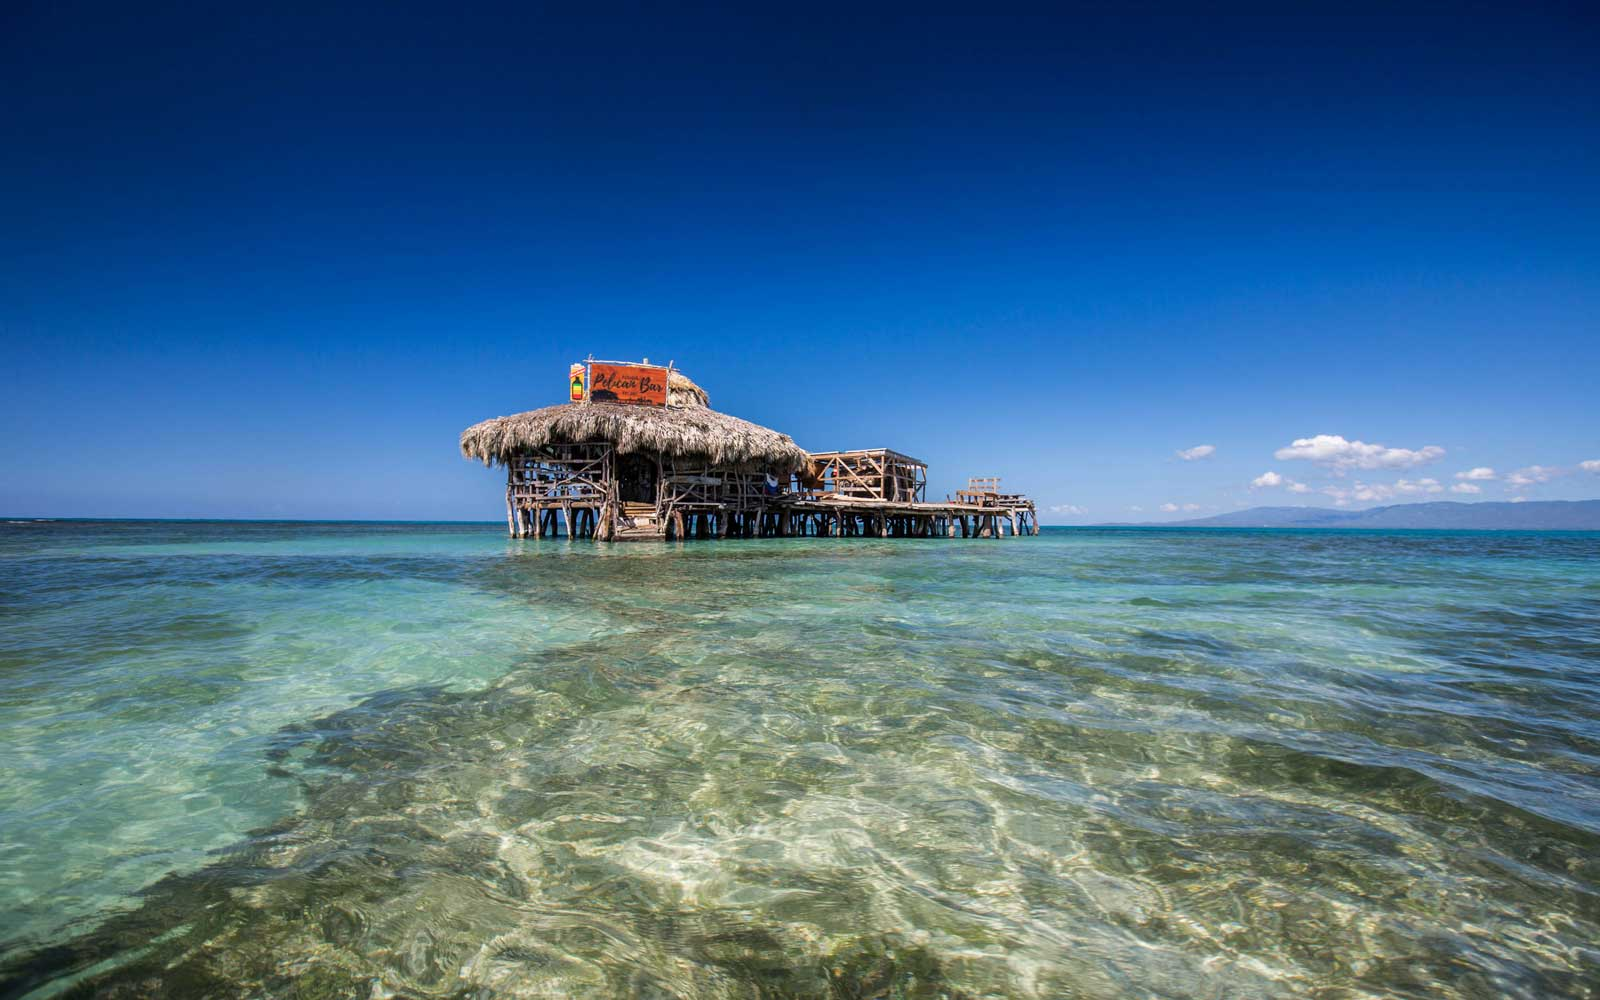 You Can Get an All-expenses Paid Vacation to Jamaica to Bartend at This Caribbean Bar in the Ocean